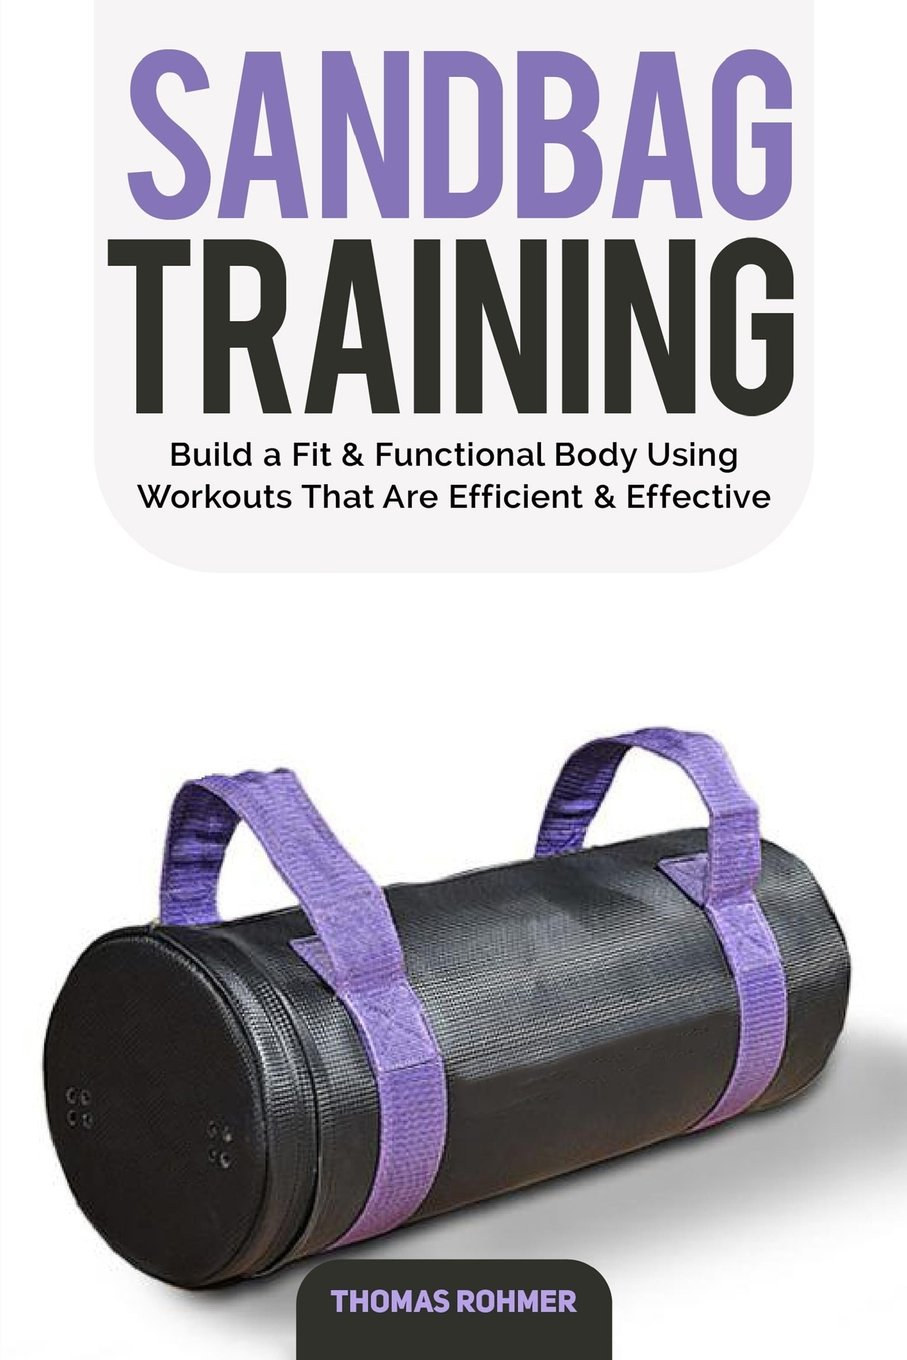 Sandbag Training: Build a Fit & Functional Body Using Workouts That Are Efficient and Effective—Includes Over 50 Different Sandbag Workouts! pdf epub